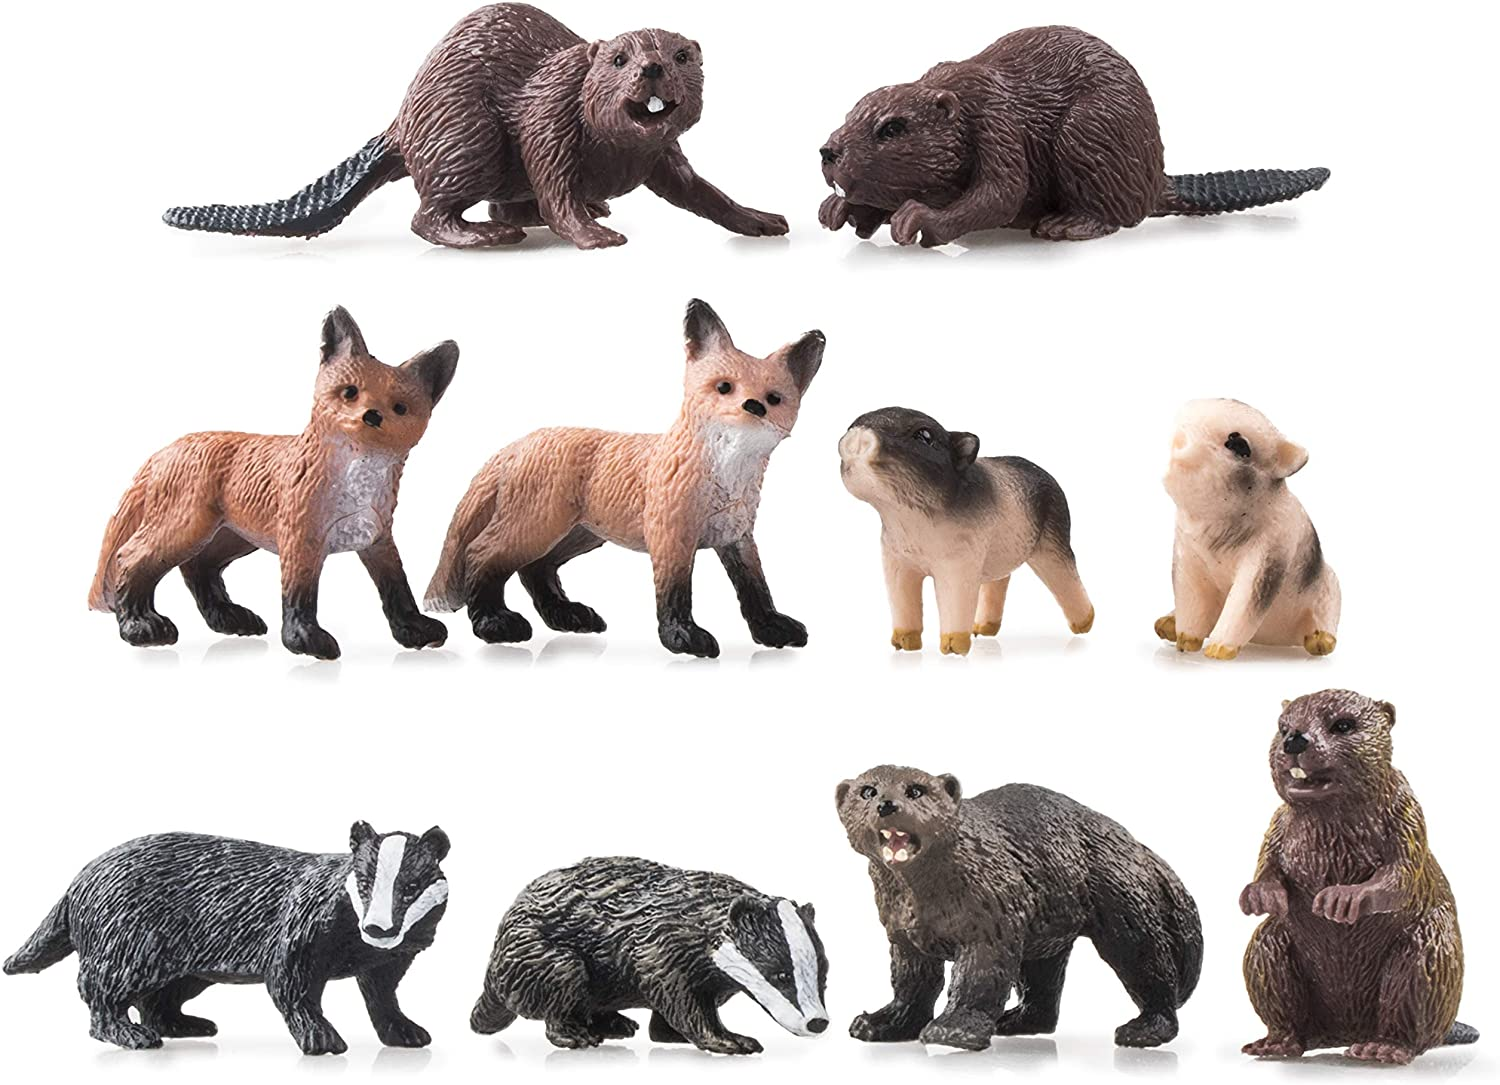 TOYMANY 10PCS Mini Forest Animal Figures, Realistic Wildlife Animal Figurines Toy Set Includes Beavers Foxes Badgers, Easter Eggs Education Birthday Gift Christmas Toy for Kids Children Toddlers